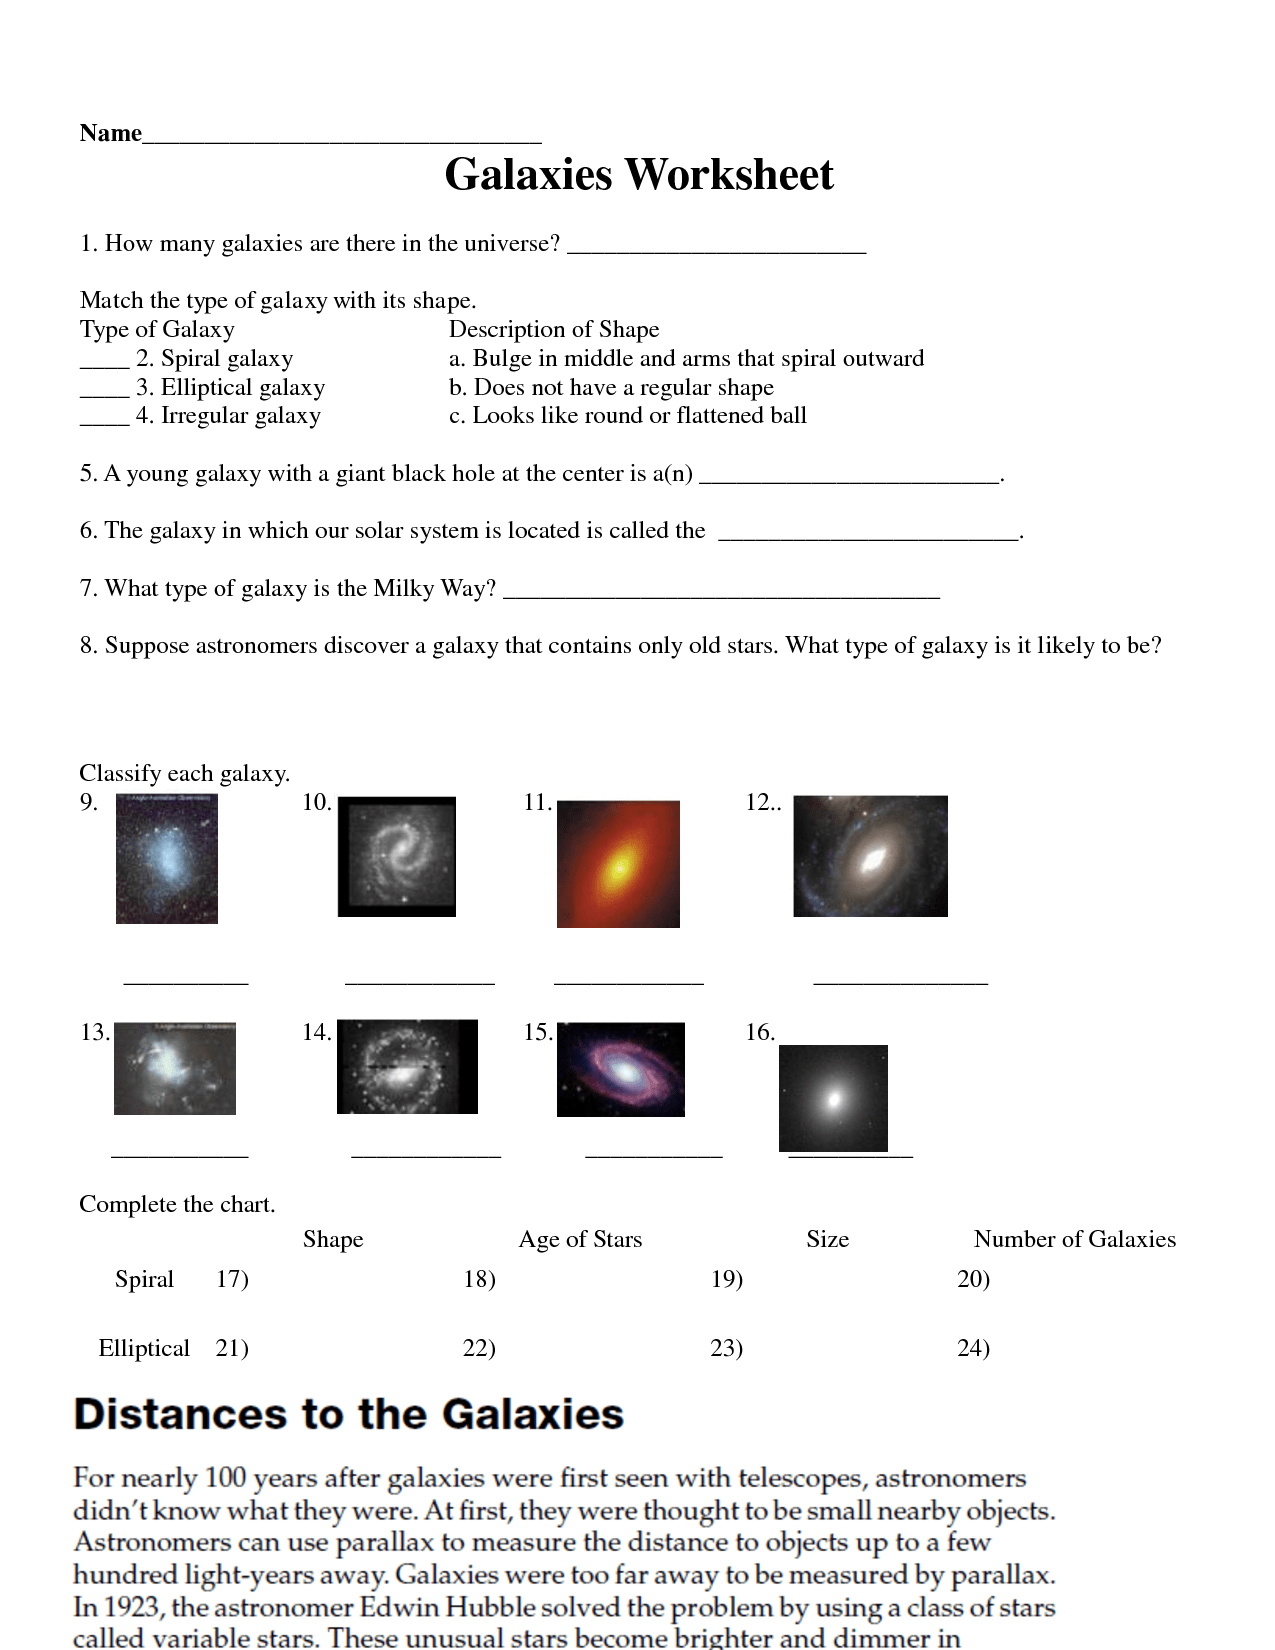 Galaxy Worksheet